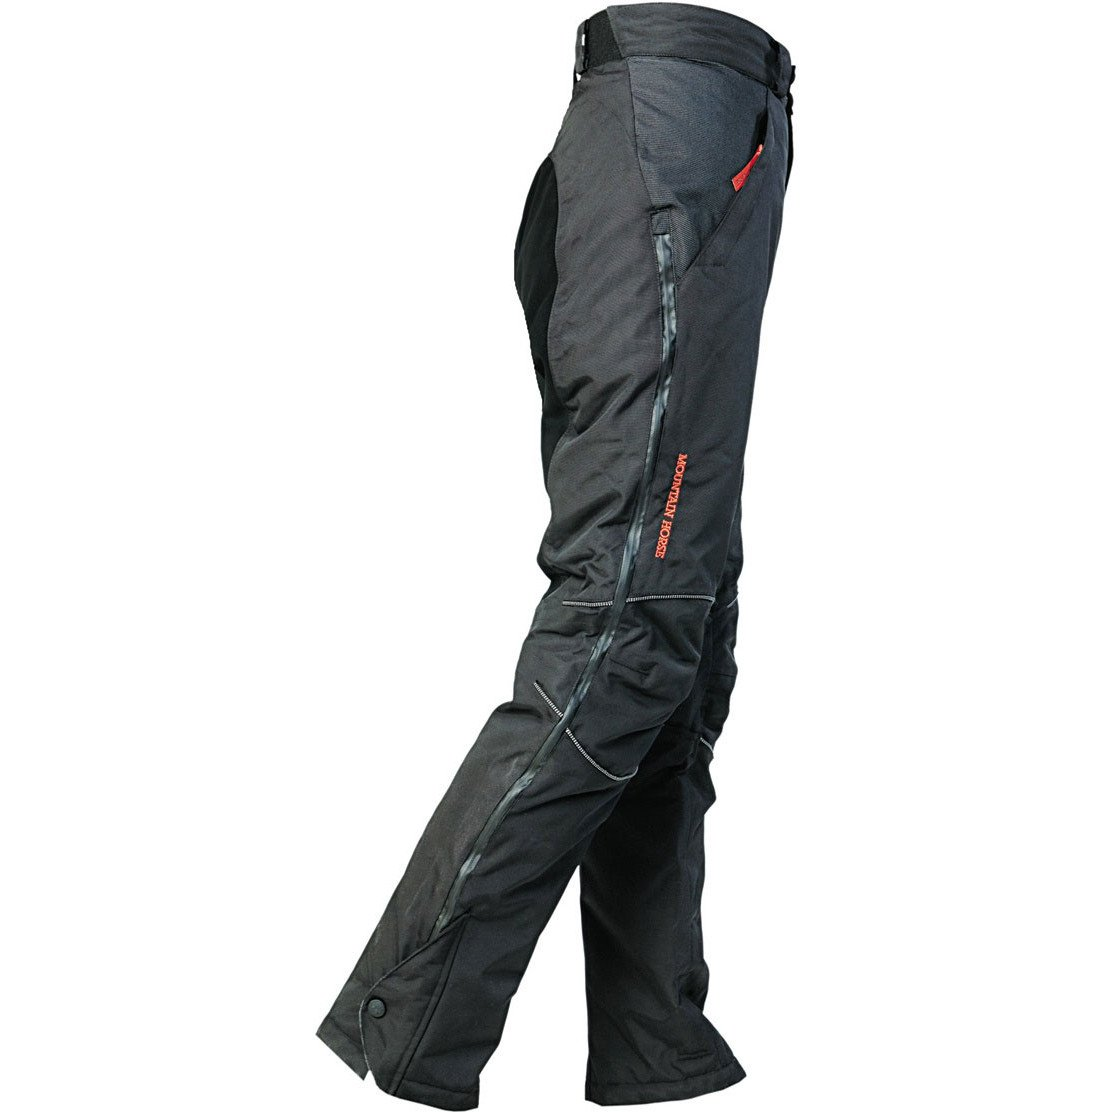 Mountain Horse Polar Breeches Waterproof Pant Small Black